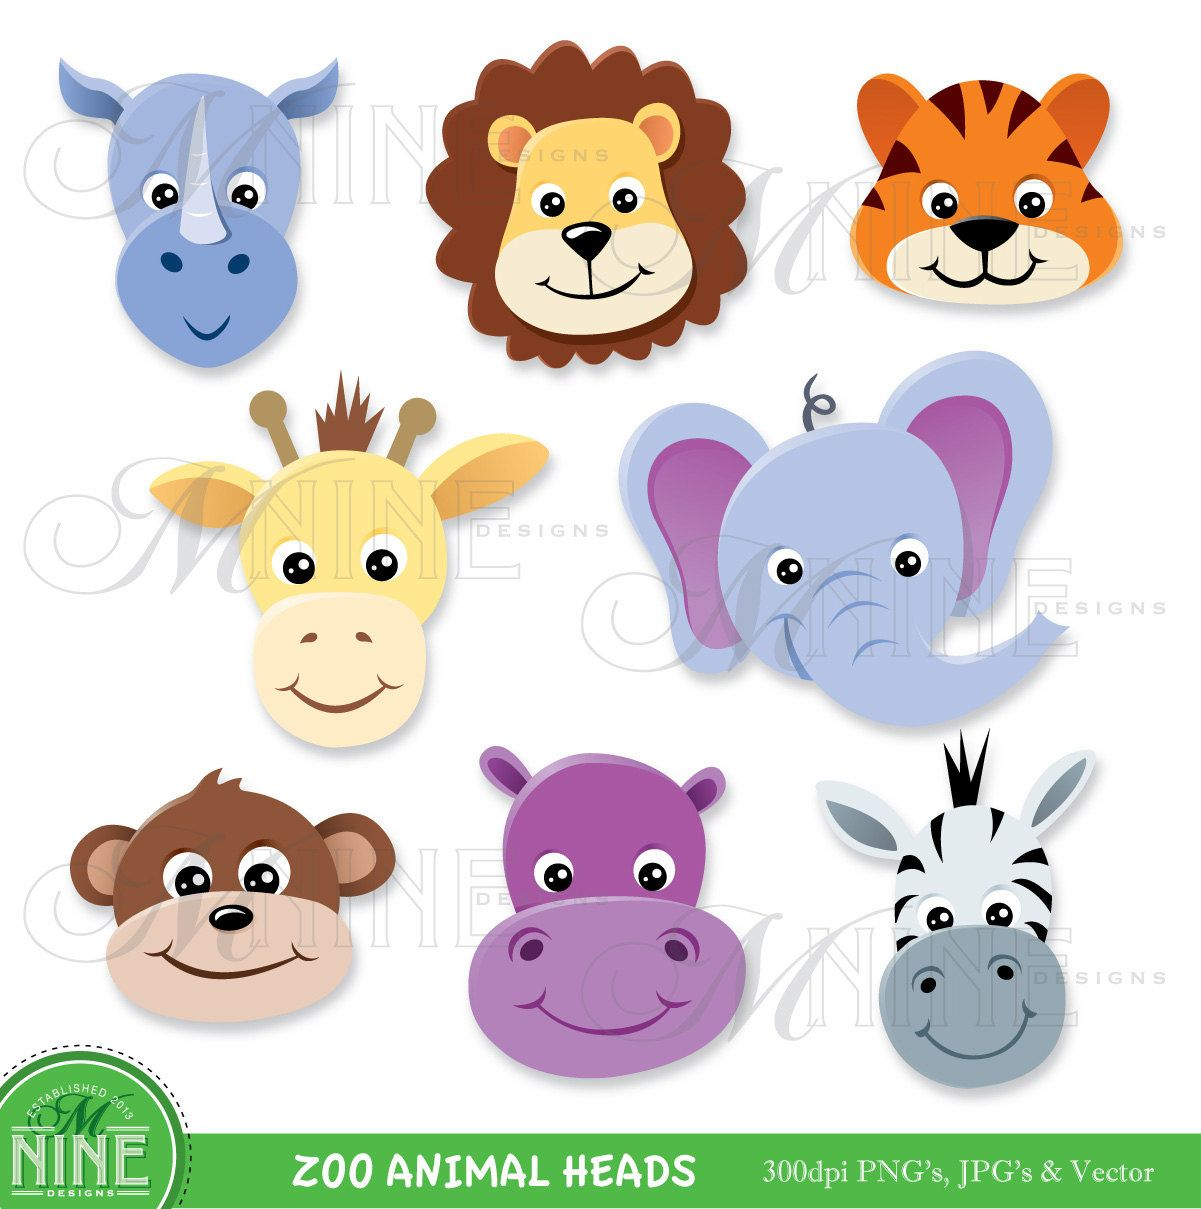 medium resolution of zoo animal heads clipart digital clip art instant by mninedesigns 4 99